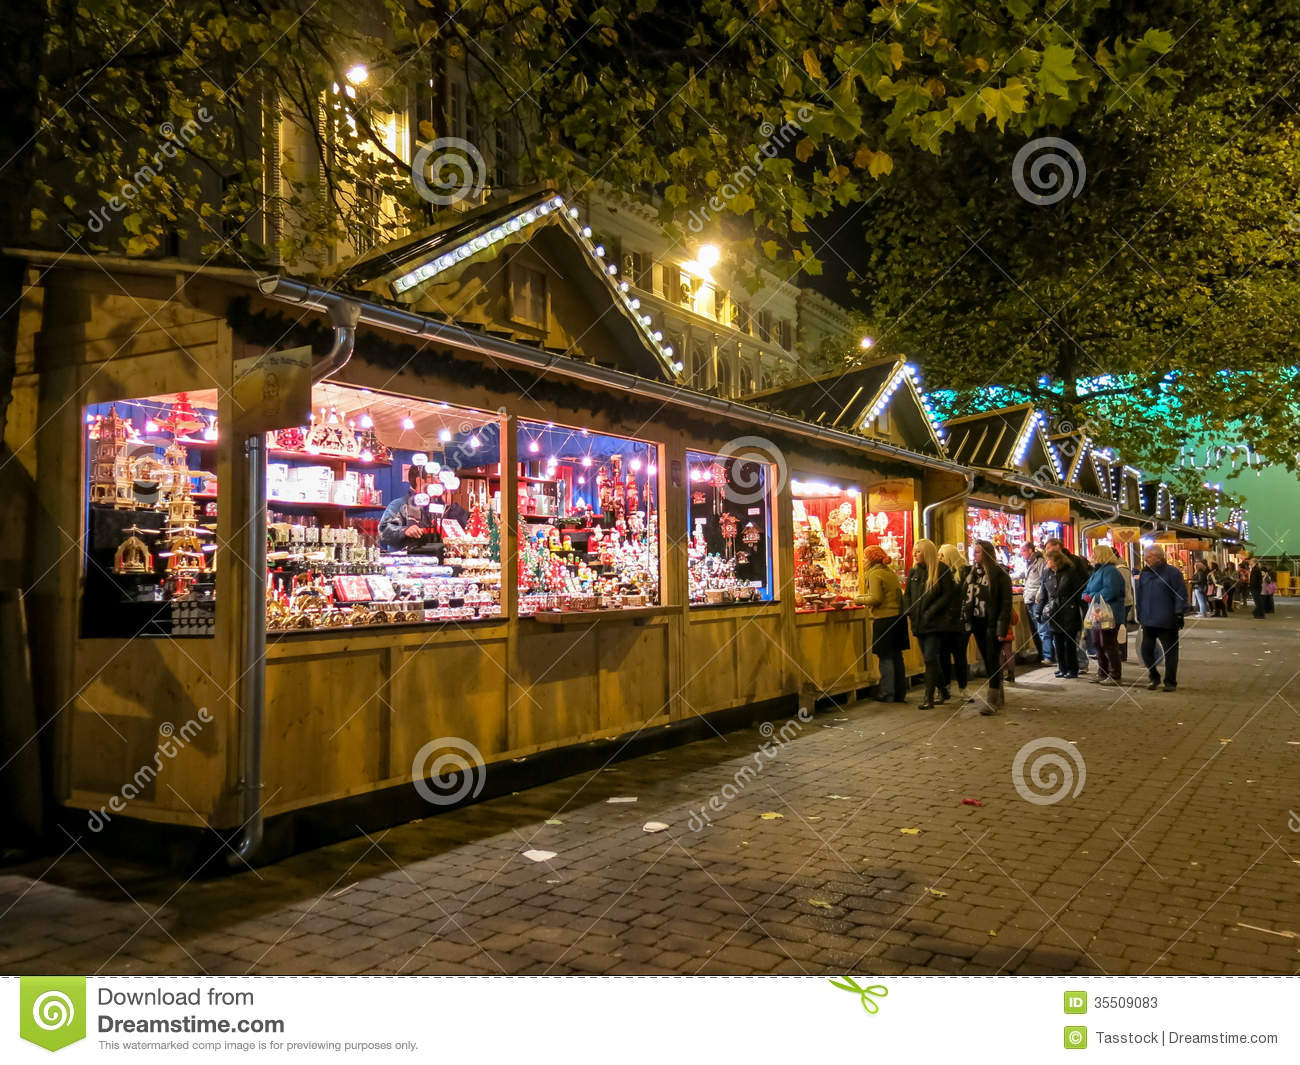 People and row of stalls on manchester christmas markets fair by night